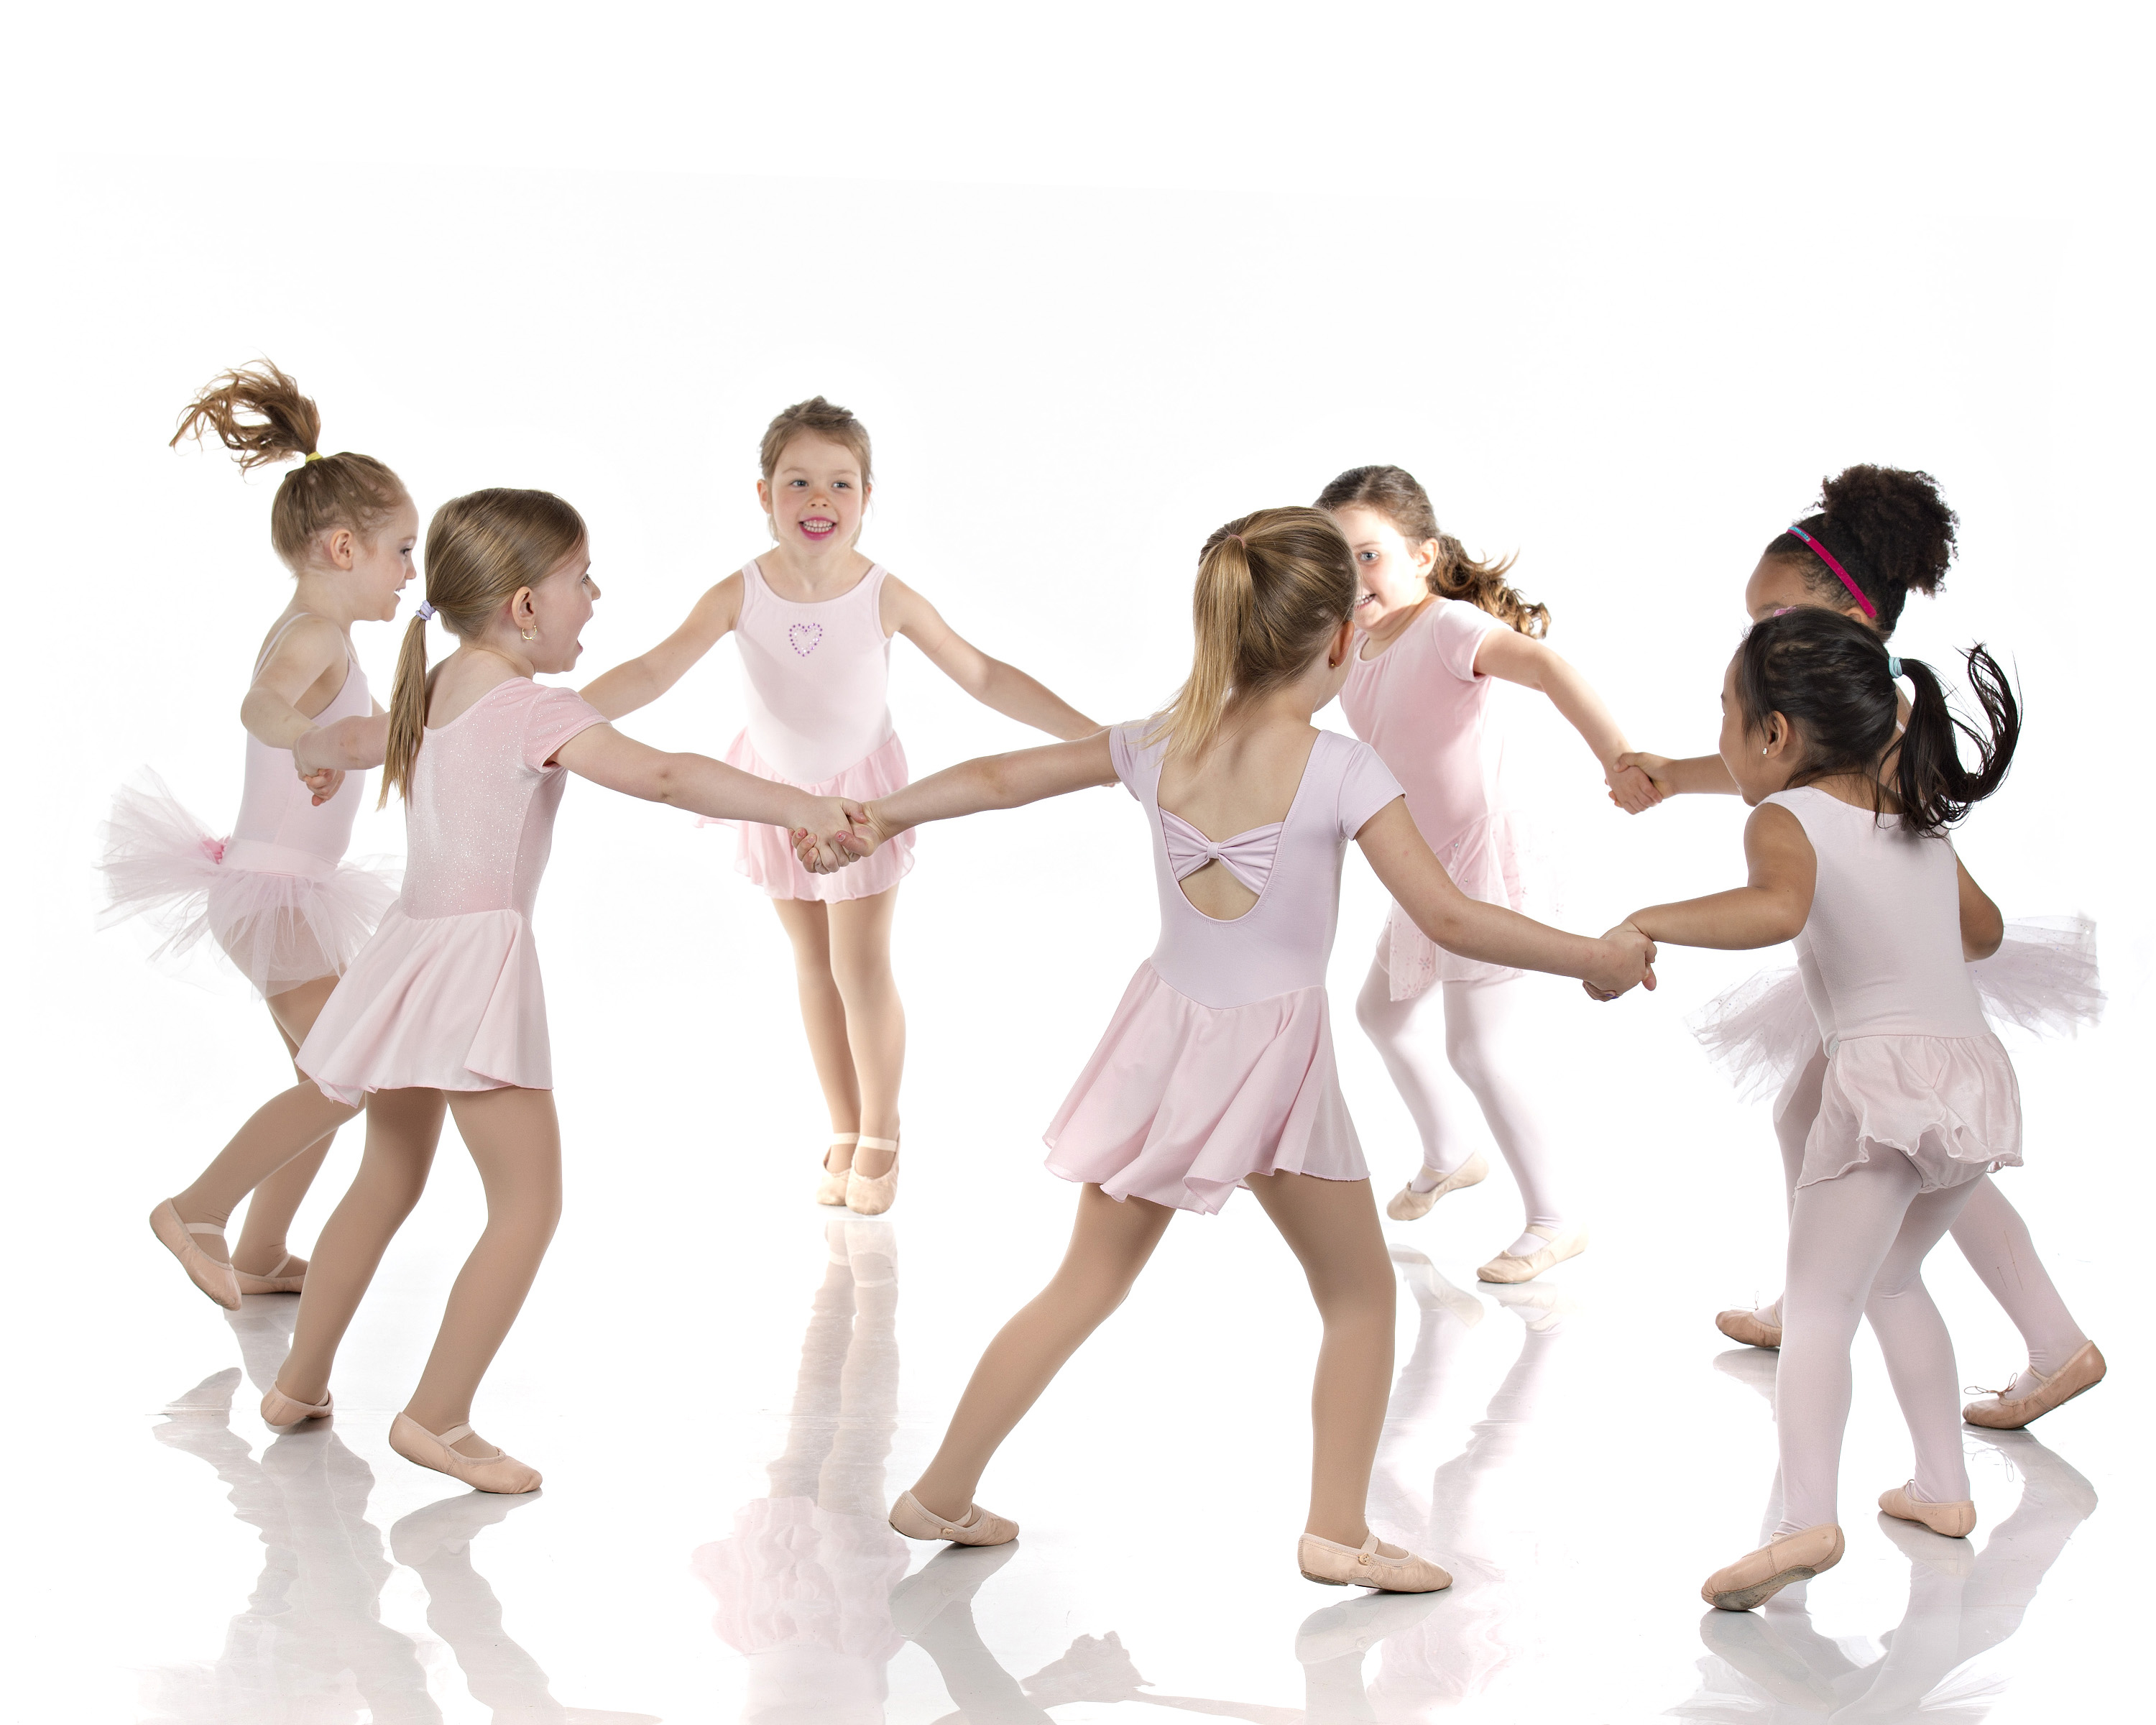 DDA Dance Academy | Dance Studios at 40 Eisenhower Drive - Paramus NJ - Reviews - Photos - Phone Number